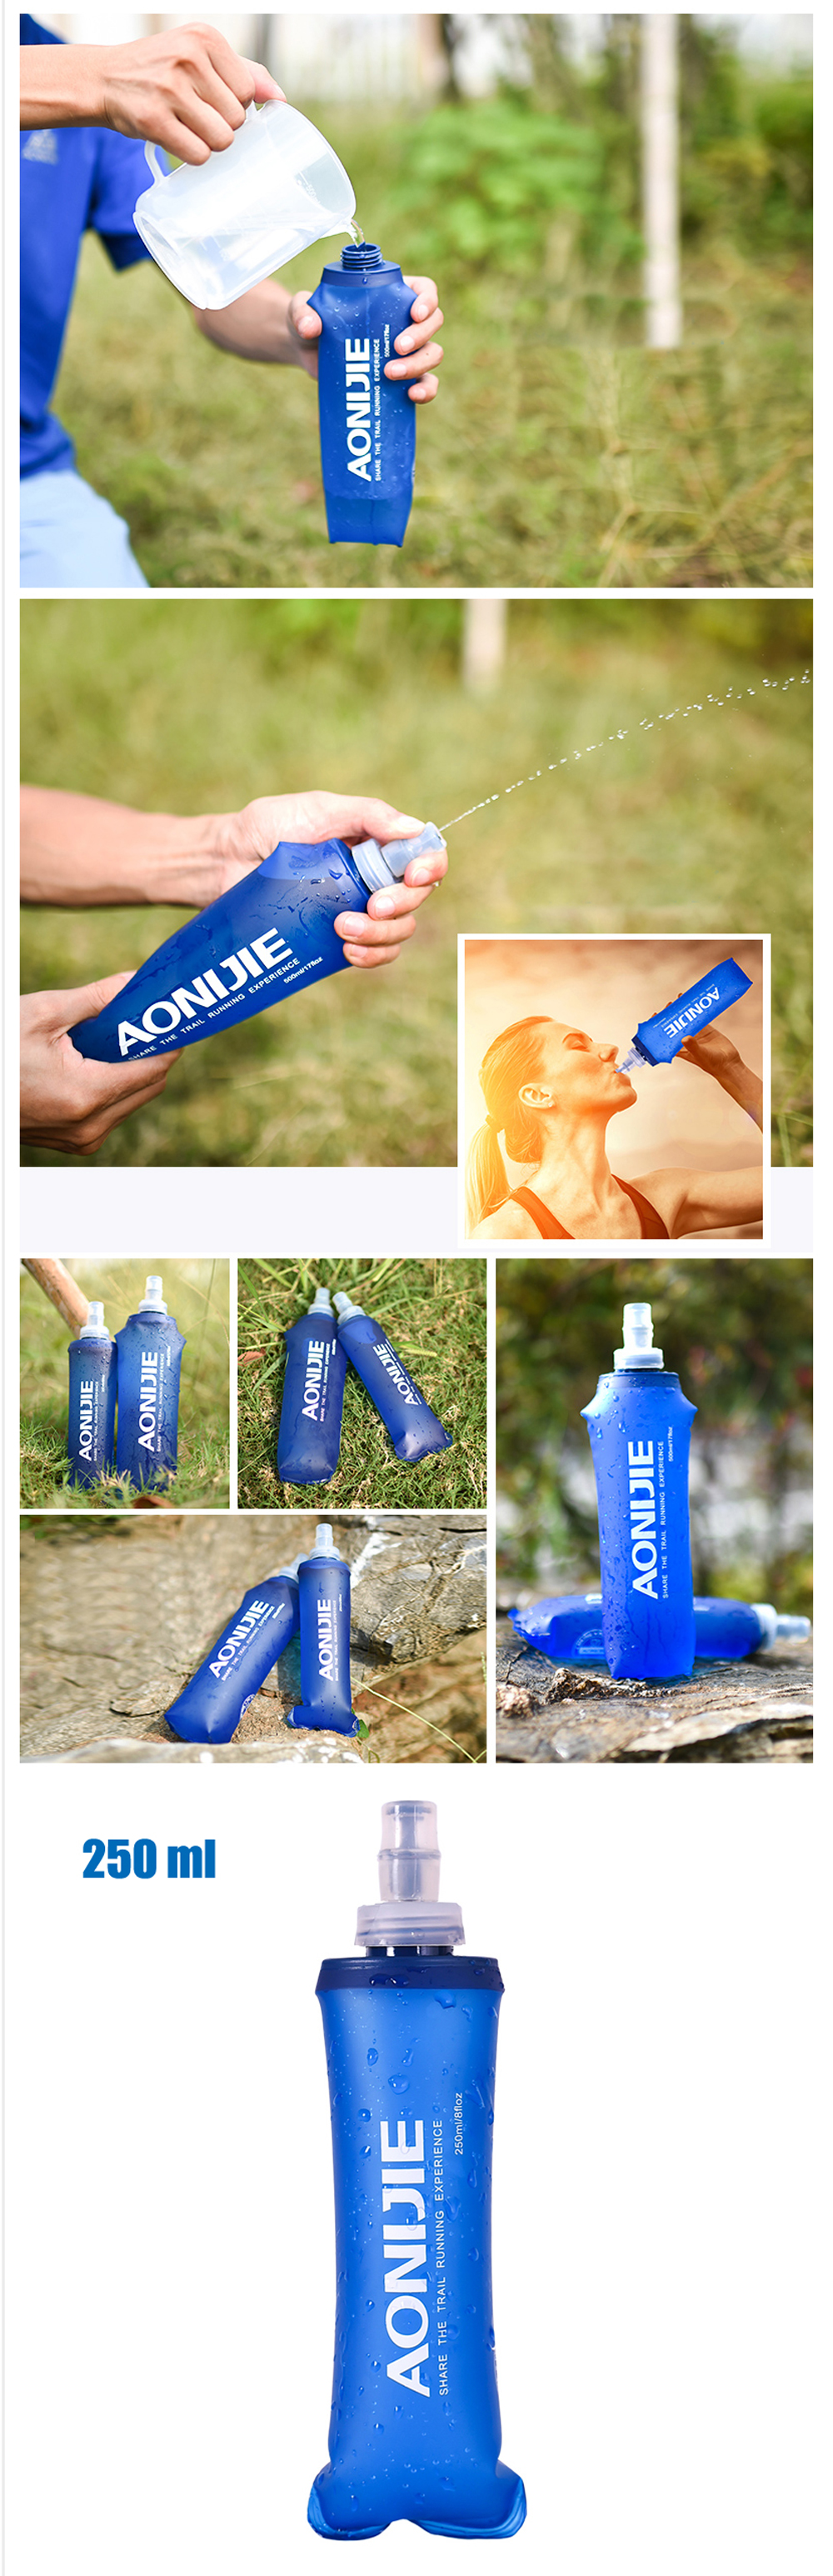 Aonijie Sd09 10 250ml 500ml Sports Bpa Free Collapsible Foldable Soft Flask Sd15 01 02 03 04 05